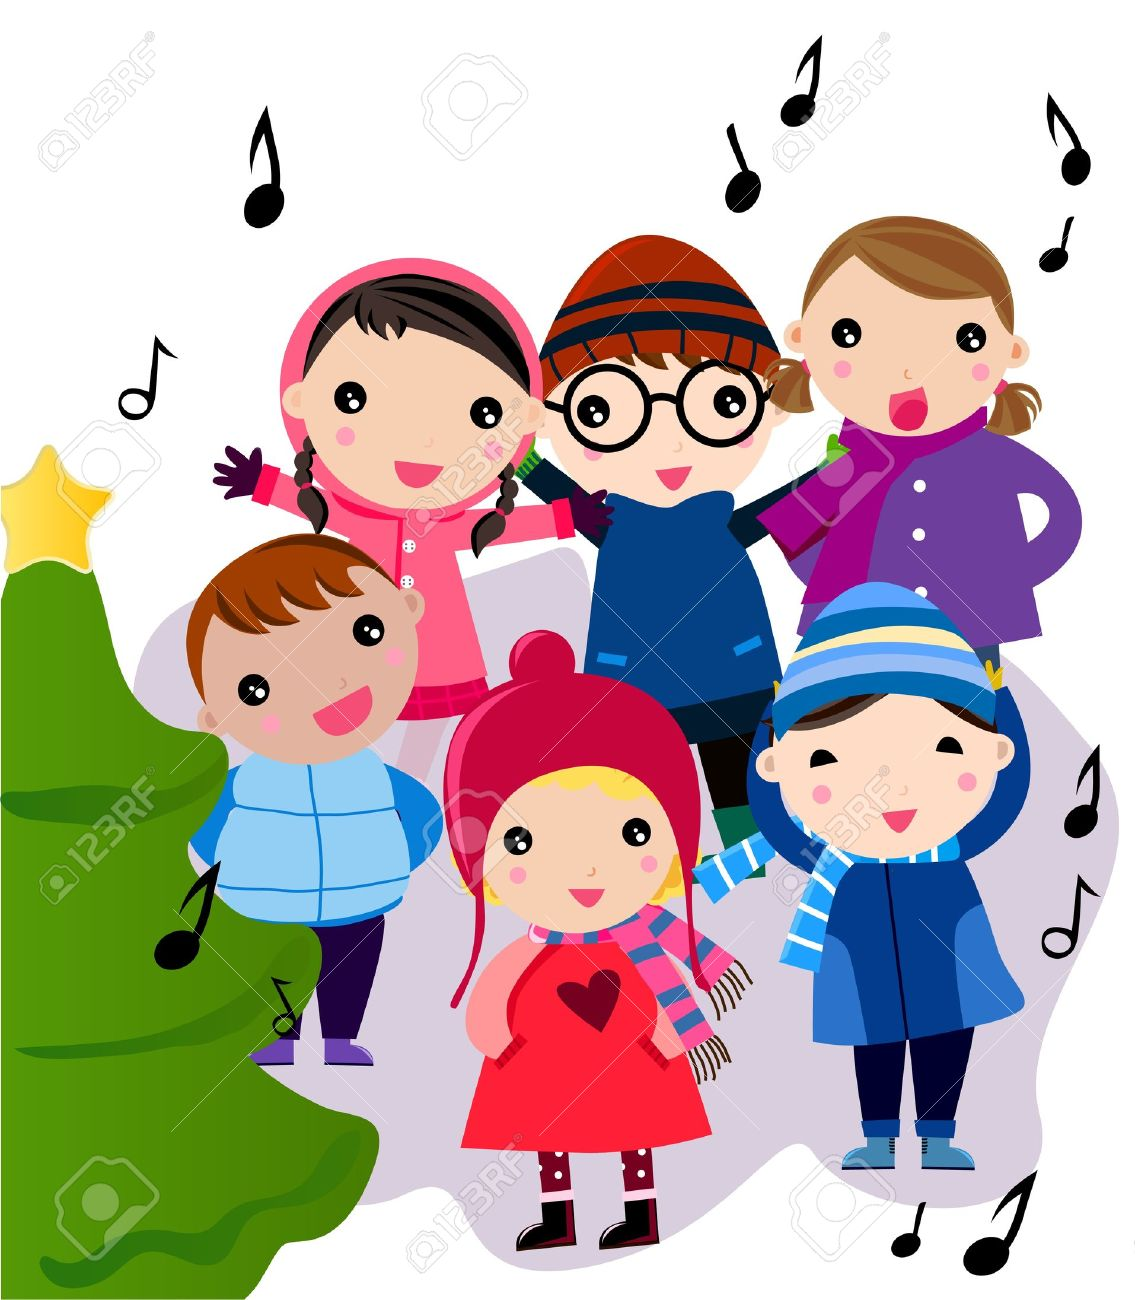 Free Clipart Christmas Caroling.